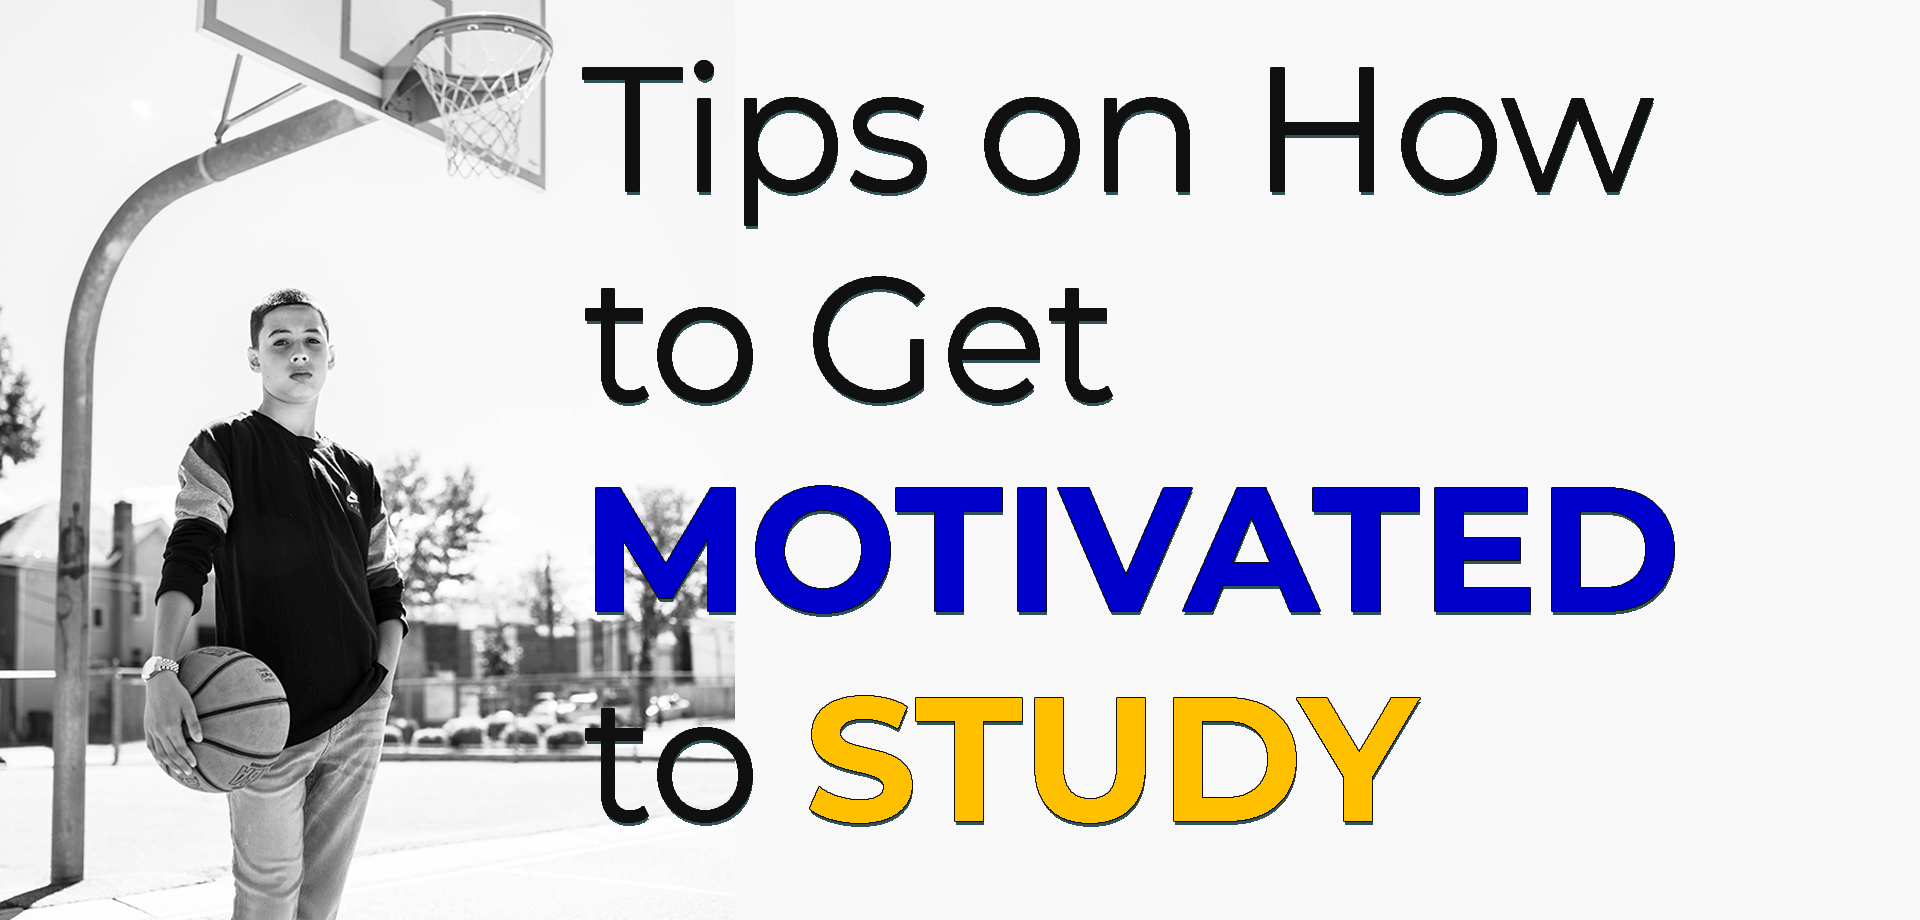 Tips on How to Get Motivated to Study